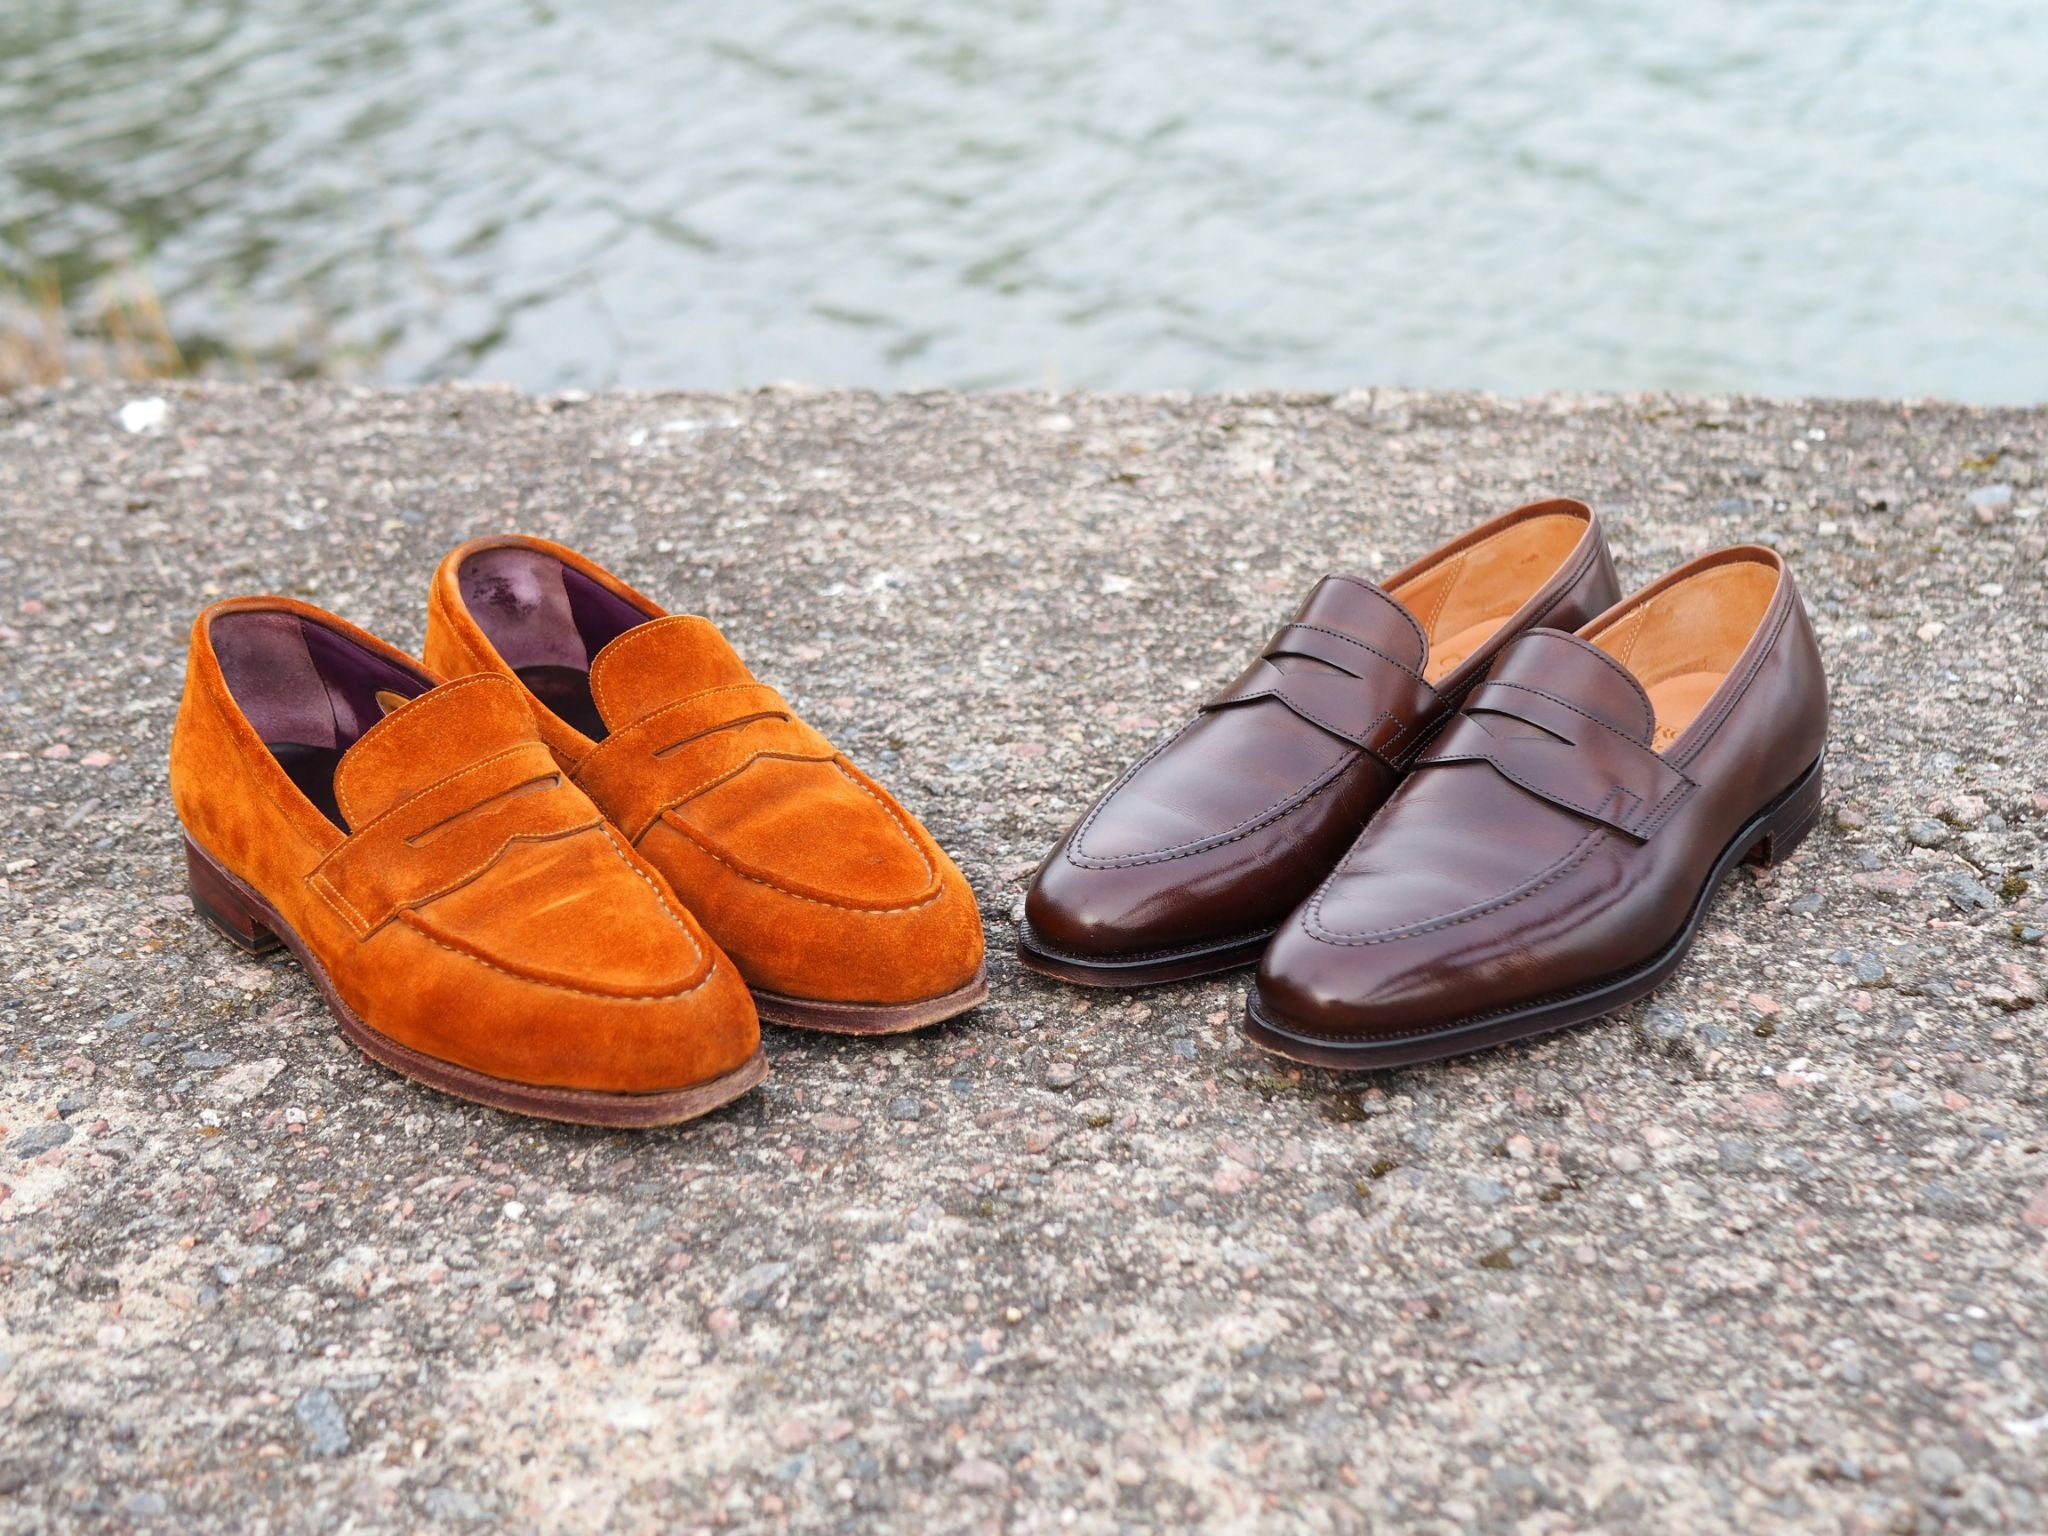 Suede penny loafer by Meermin and brown calf leather loafers by Crockett&Jones.